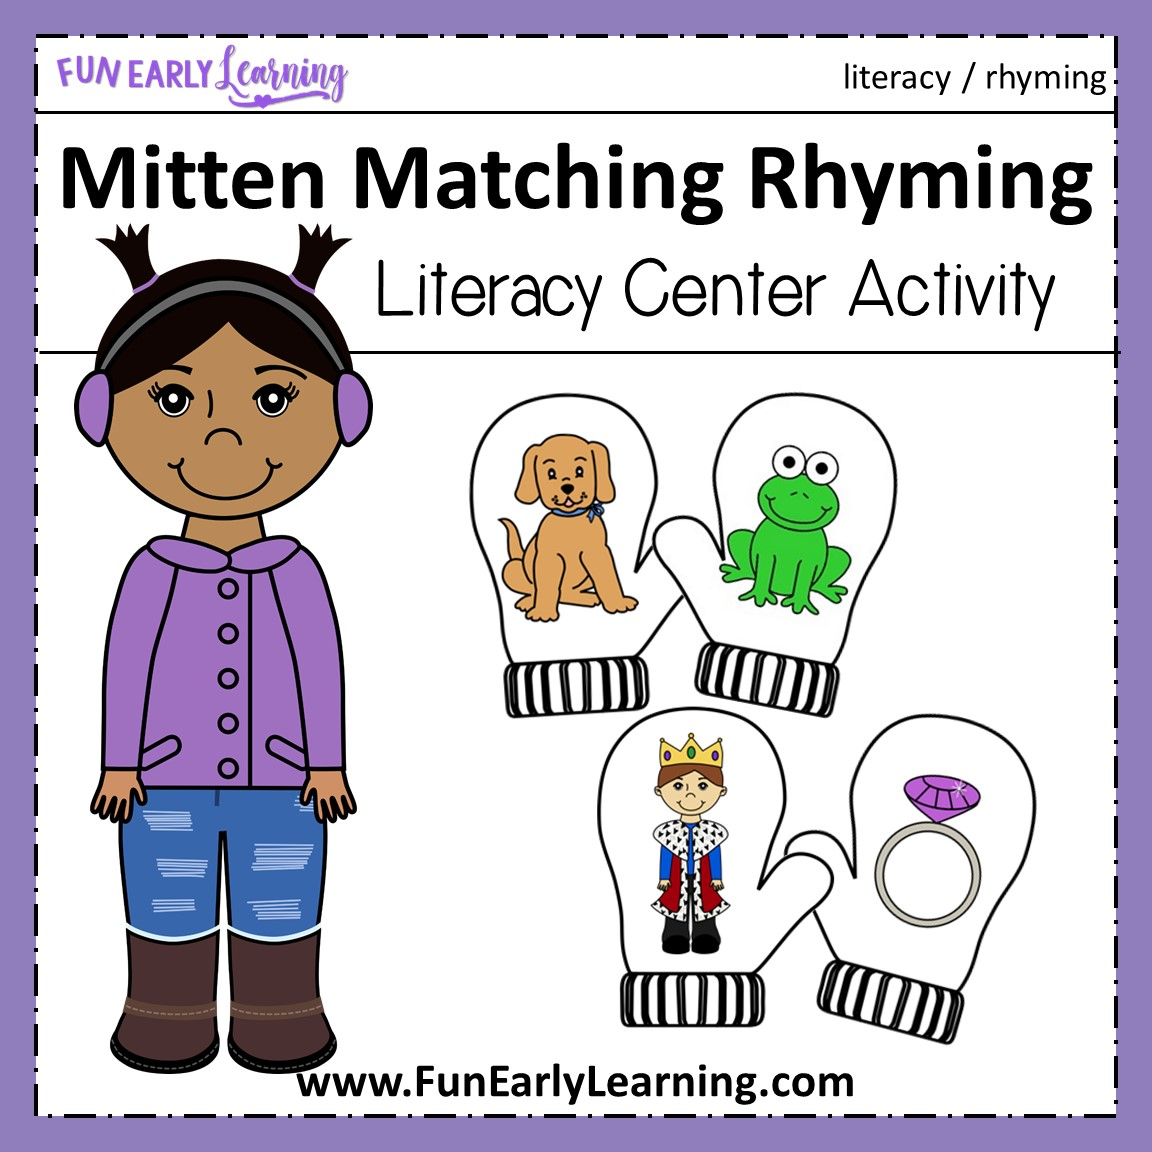 Winter Mitten Matching Rhyming Activity For Preschool And